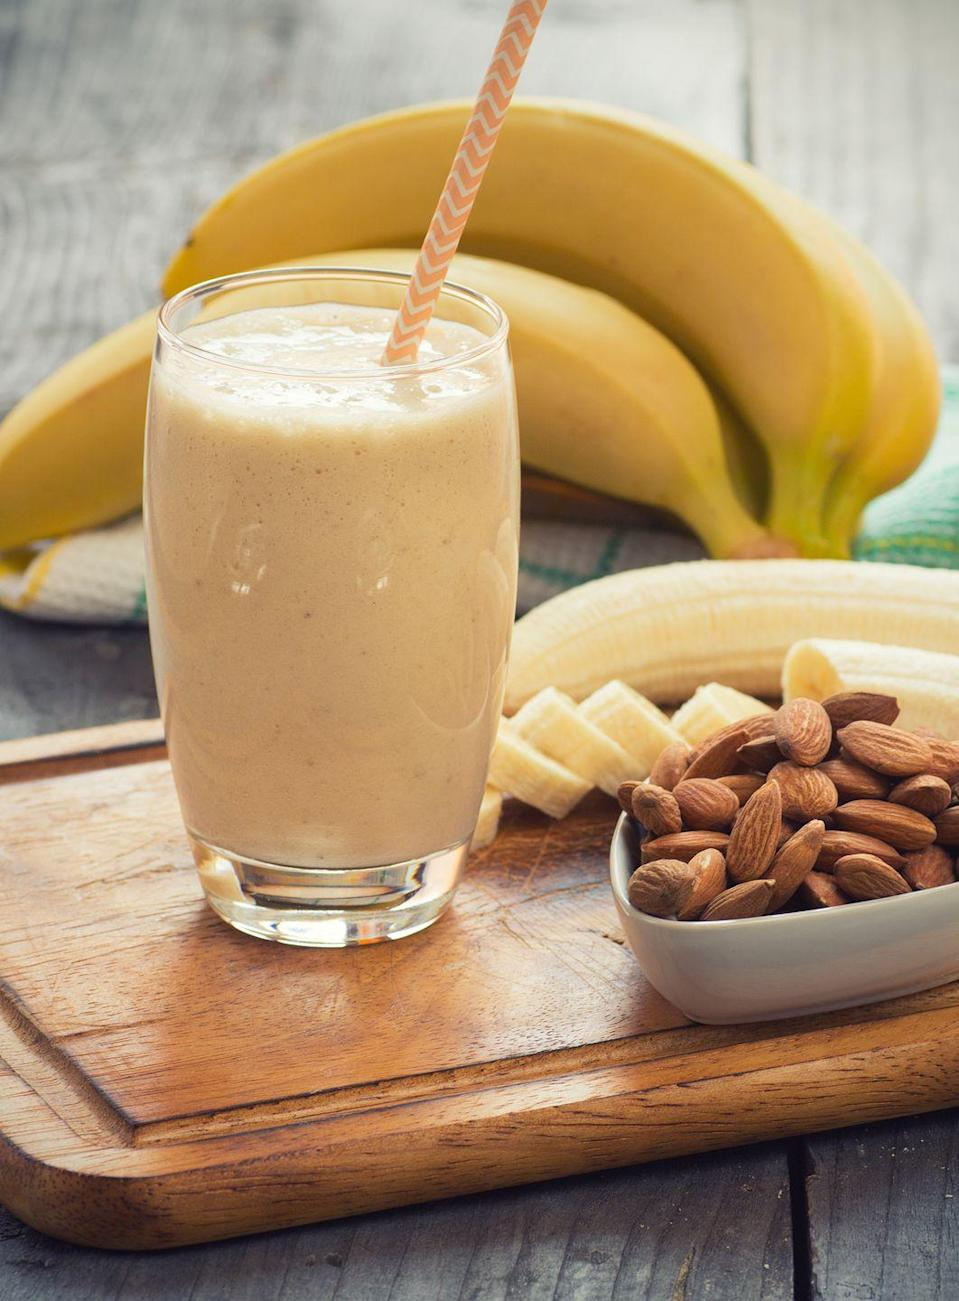 "<p>""This creamy smoothie provides a balanced combination of all the major nutrients [your body needs to lose weight],"" D'Orazio says. ""The Greek yogurt provides protein, banana contributes healthy carbs and fiber, and you'll receive a dose of healthy fat from the almond butter. You'll surely feel satisfied and full!""<br></p><p><em>Get the recipe at <a href=""https://www.foodnetwork.com/recipes/giada-de-laurentiis/banana-and-walnut-smoothie-2354968"" rel=""nofollow noopener"" target=""_blank"" data-ylk=""slk:Food Network."" class=""link rapid-noclick-resp"">Food Network.</a></em></p>"